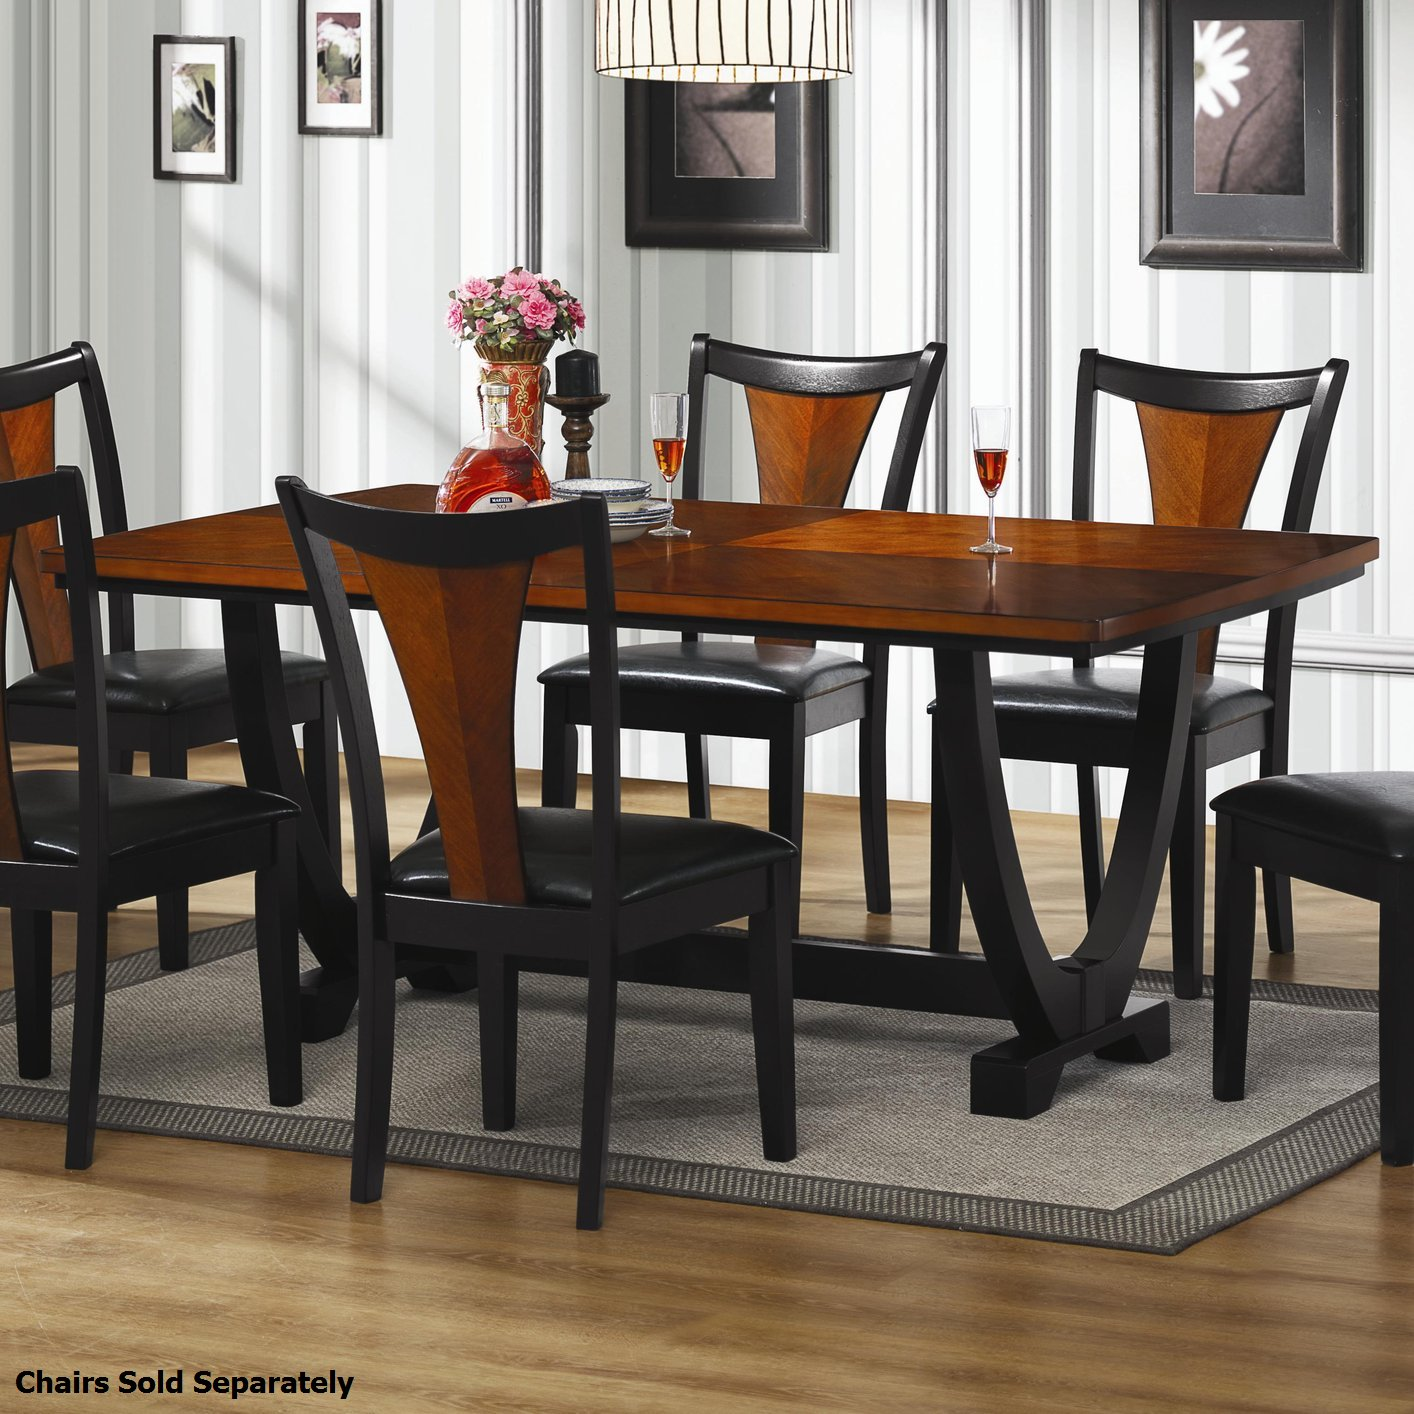 Wood And Black Dining Table: Steal-A-Sofa Furniture Outlet